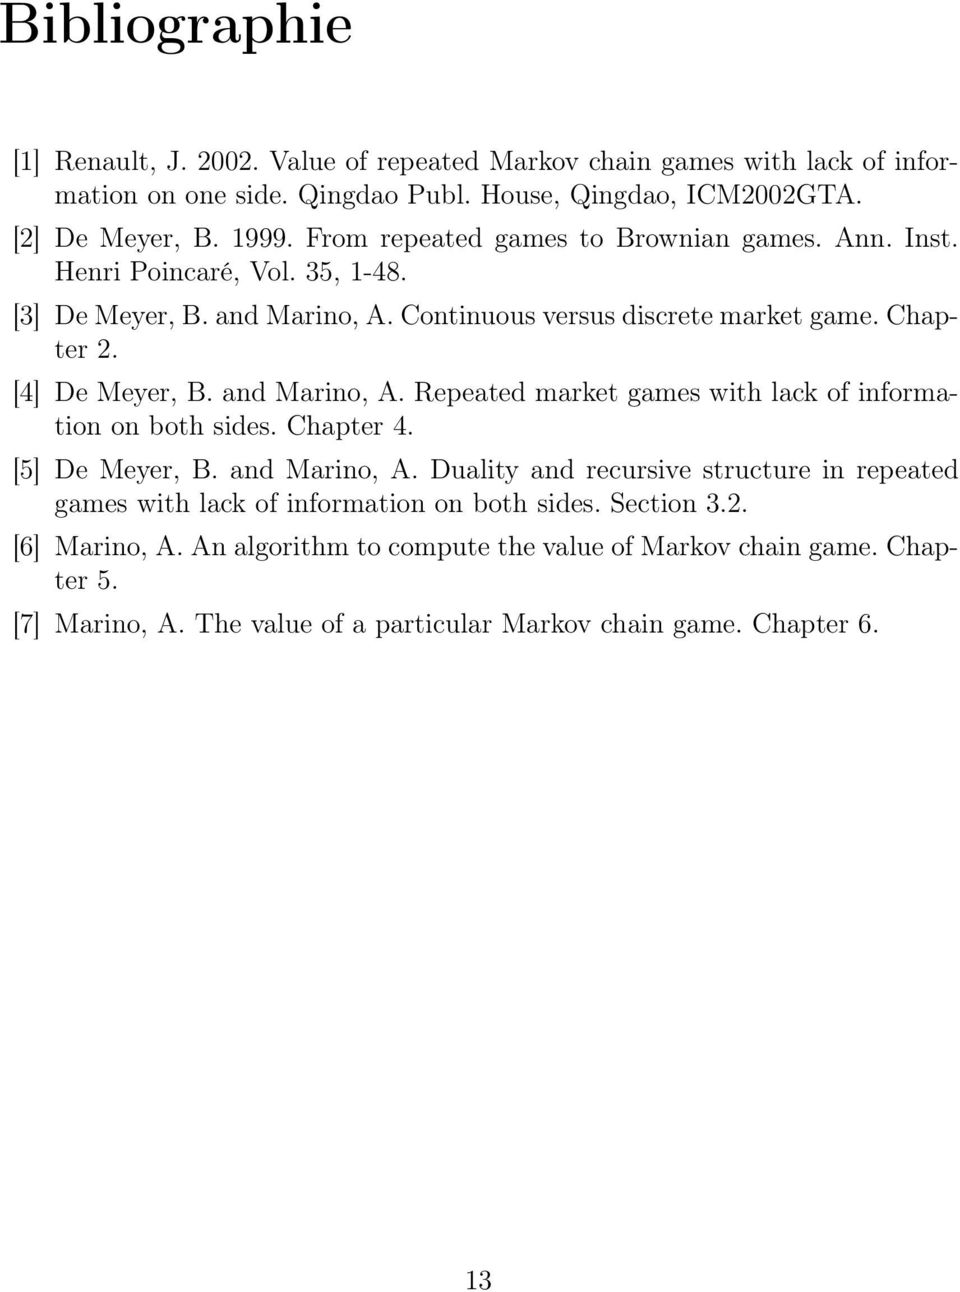 and Marino, A. Repeated market games with lack of information on both sides. Chapter 4. [5] De Meyer, B. and Marino, A.